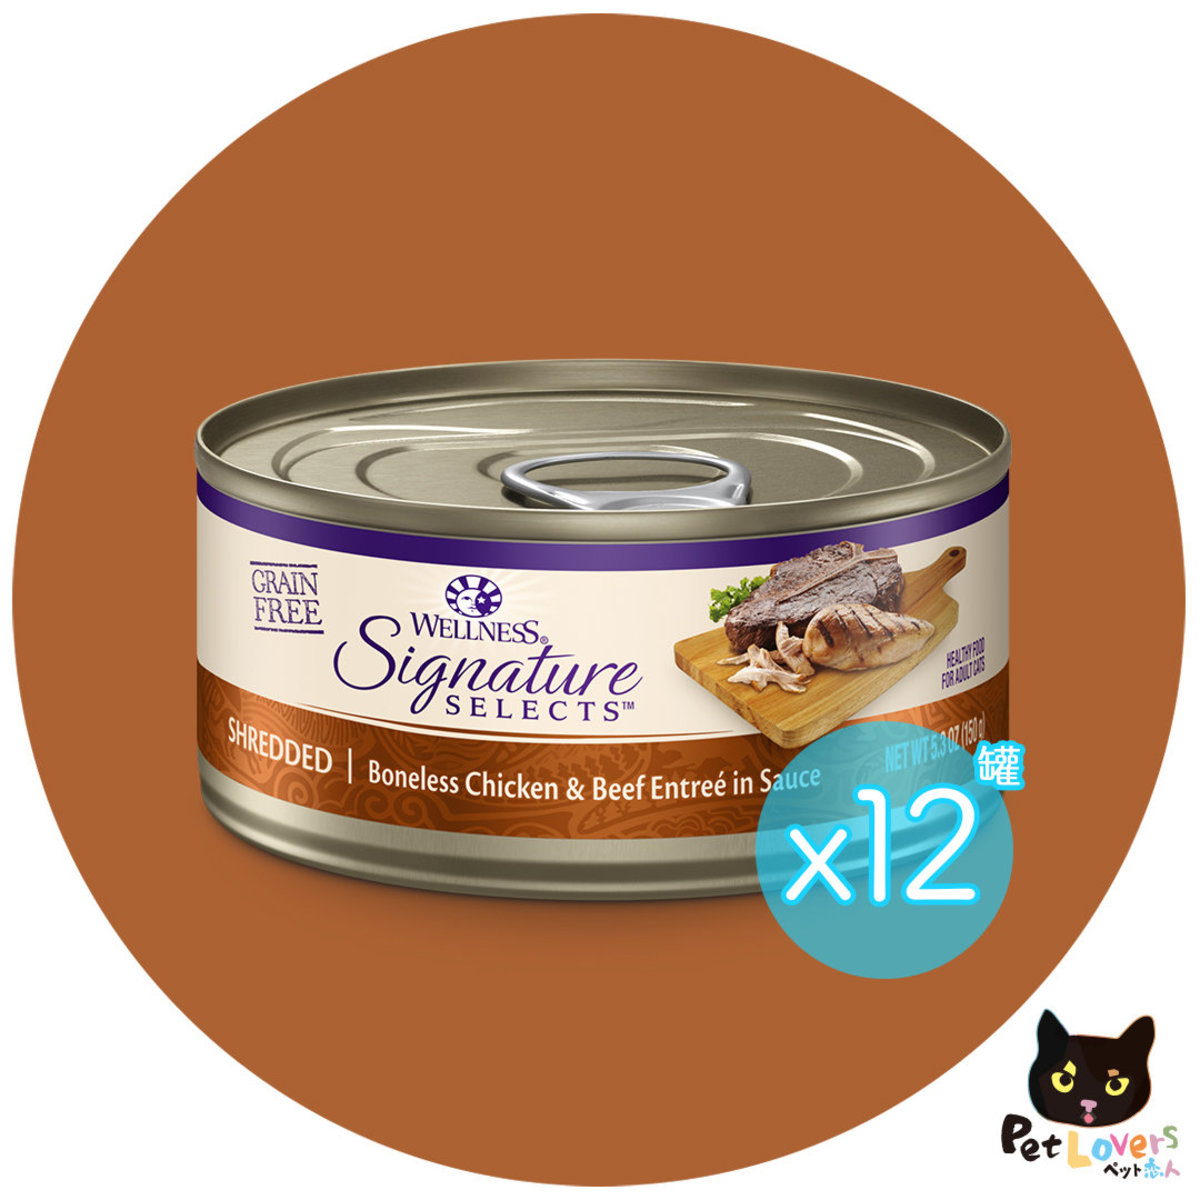 SIGNATURE SELECTS Shredded Chicken & Beef 2.8oz